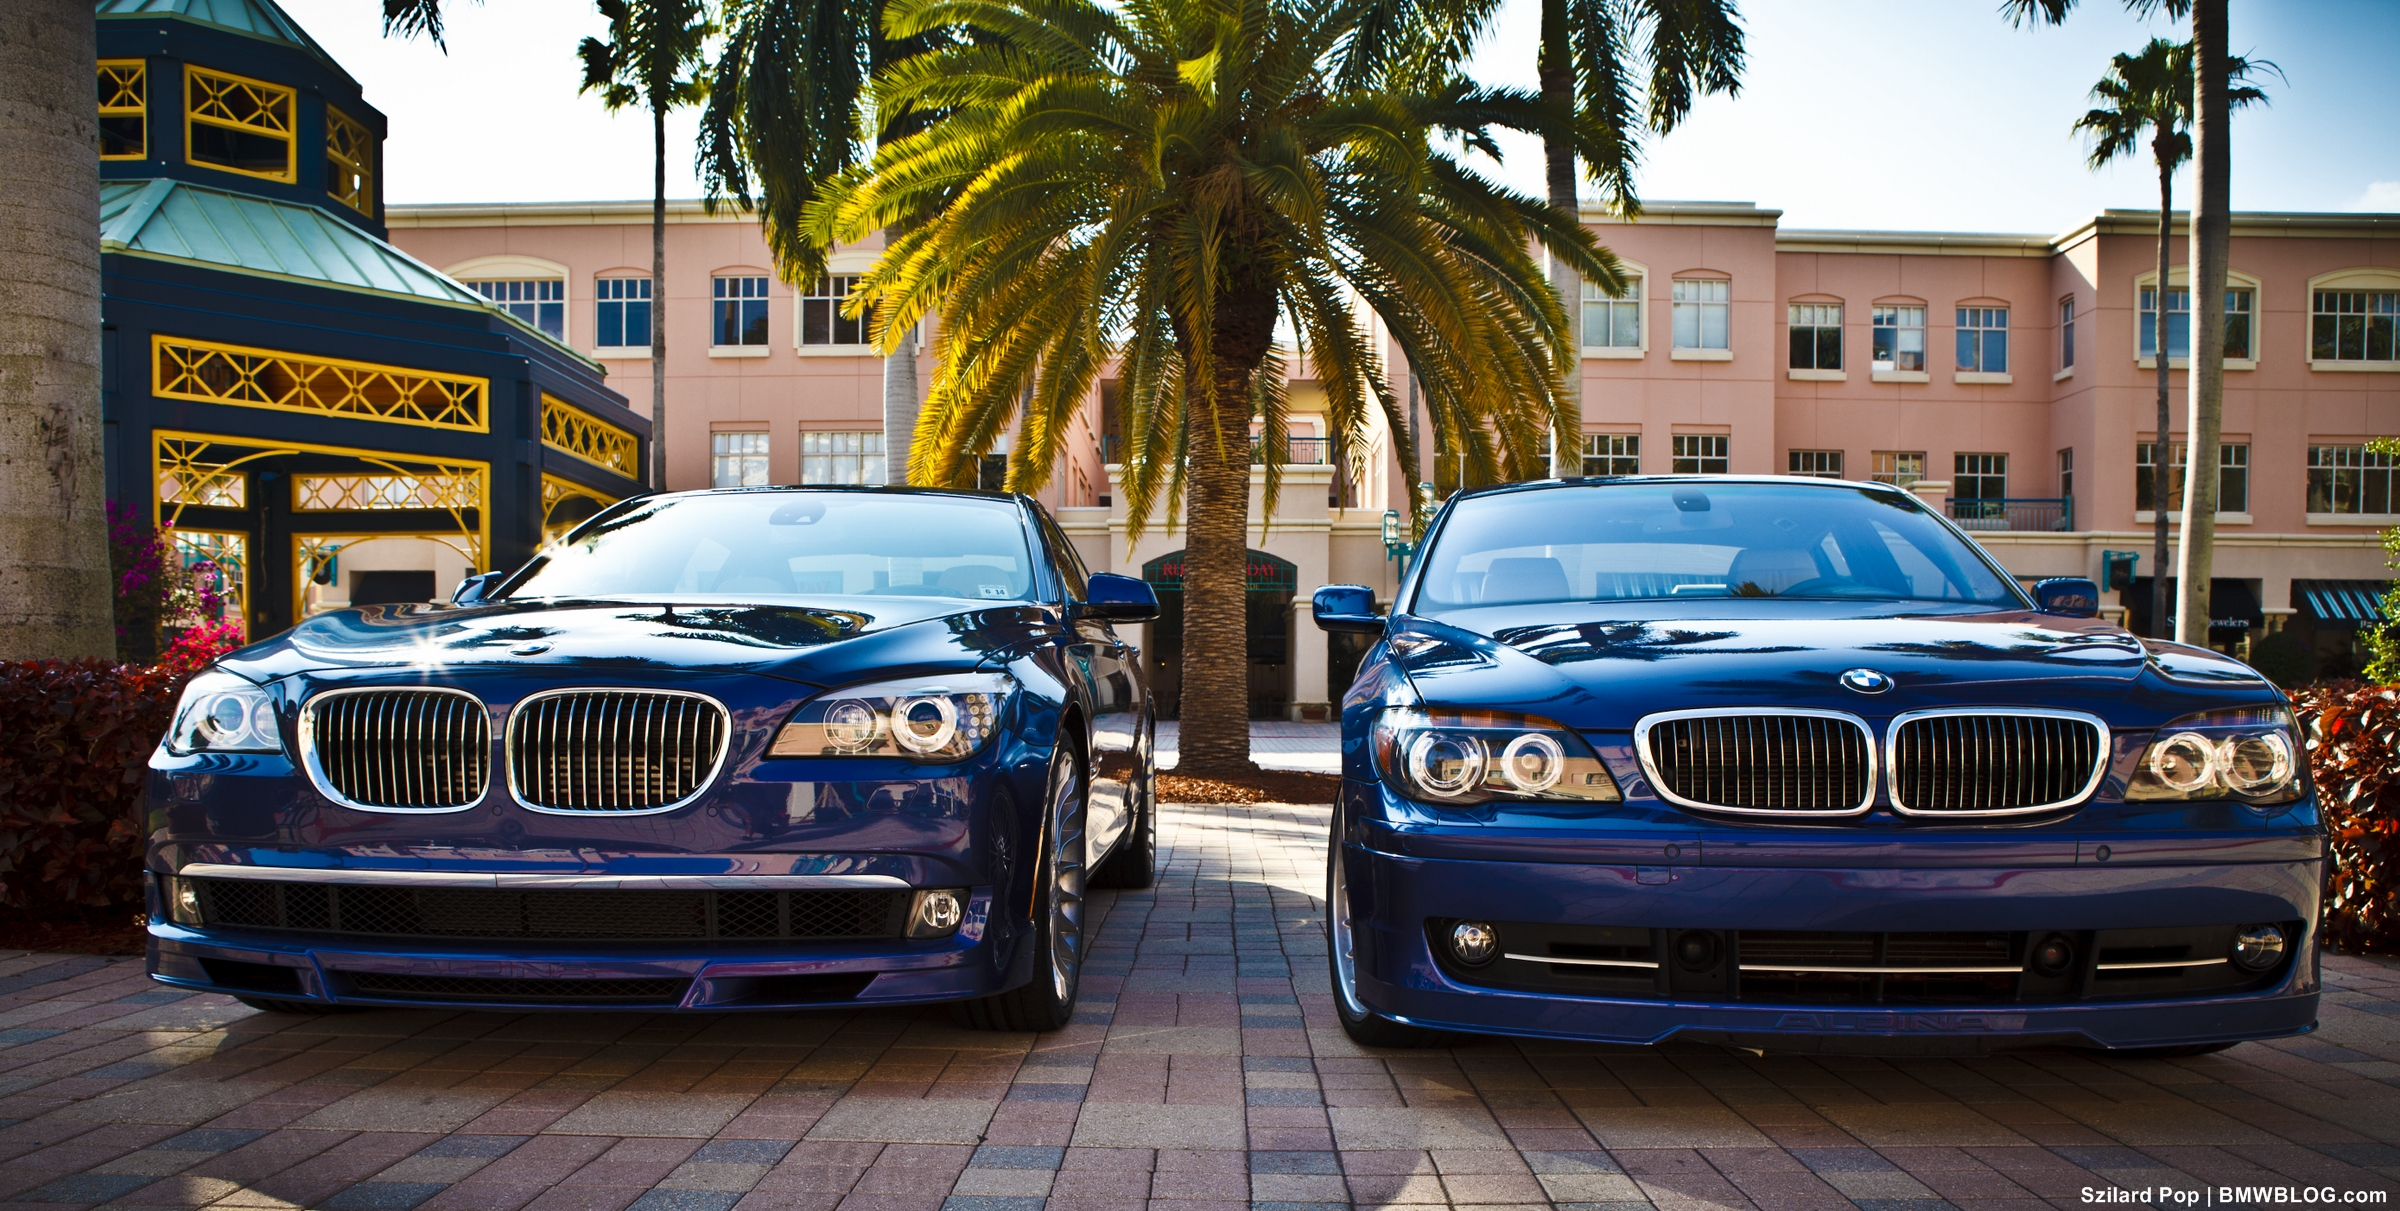 BMW Alpina B7 Wallpapers   Car Features Pictures Prices Review 2400x1211